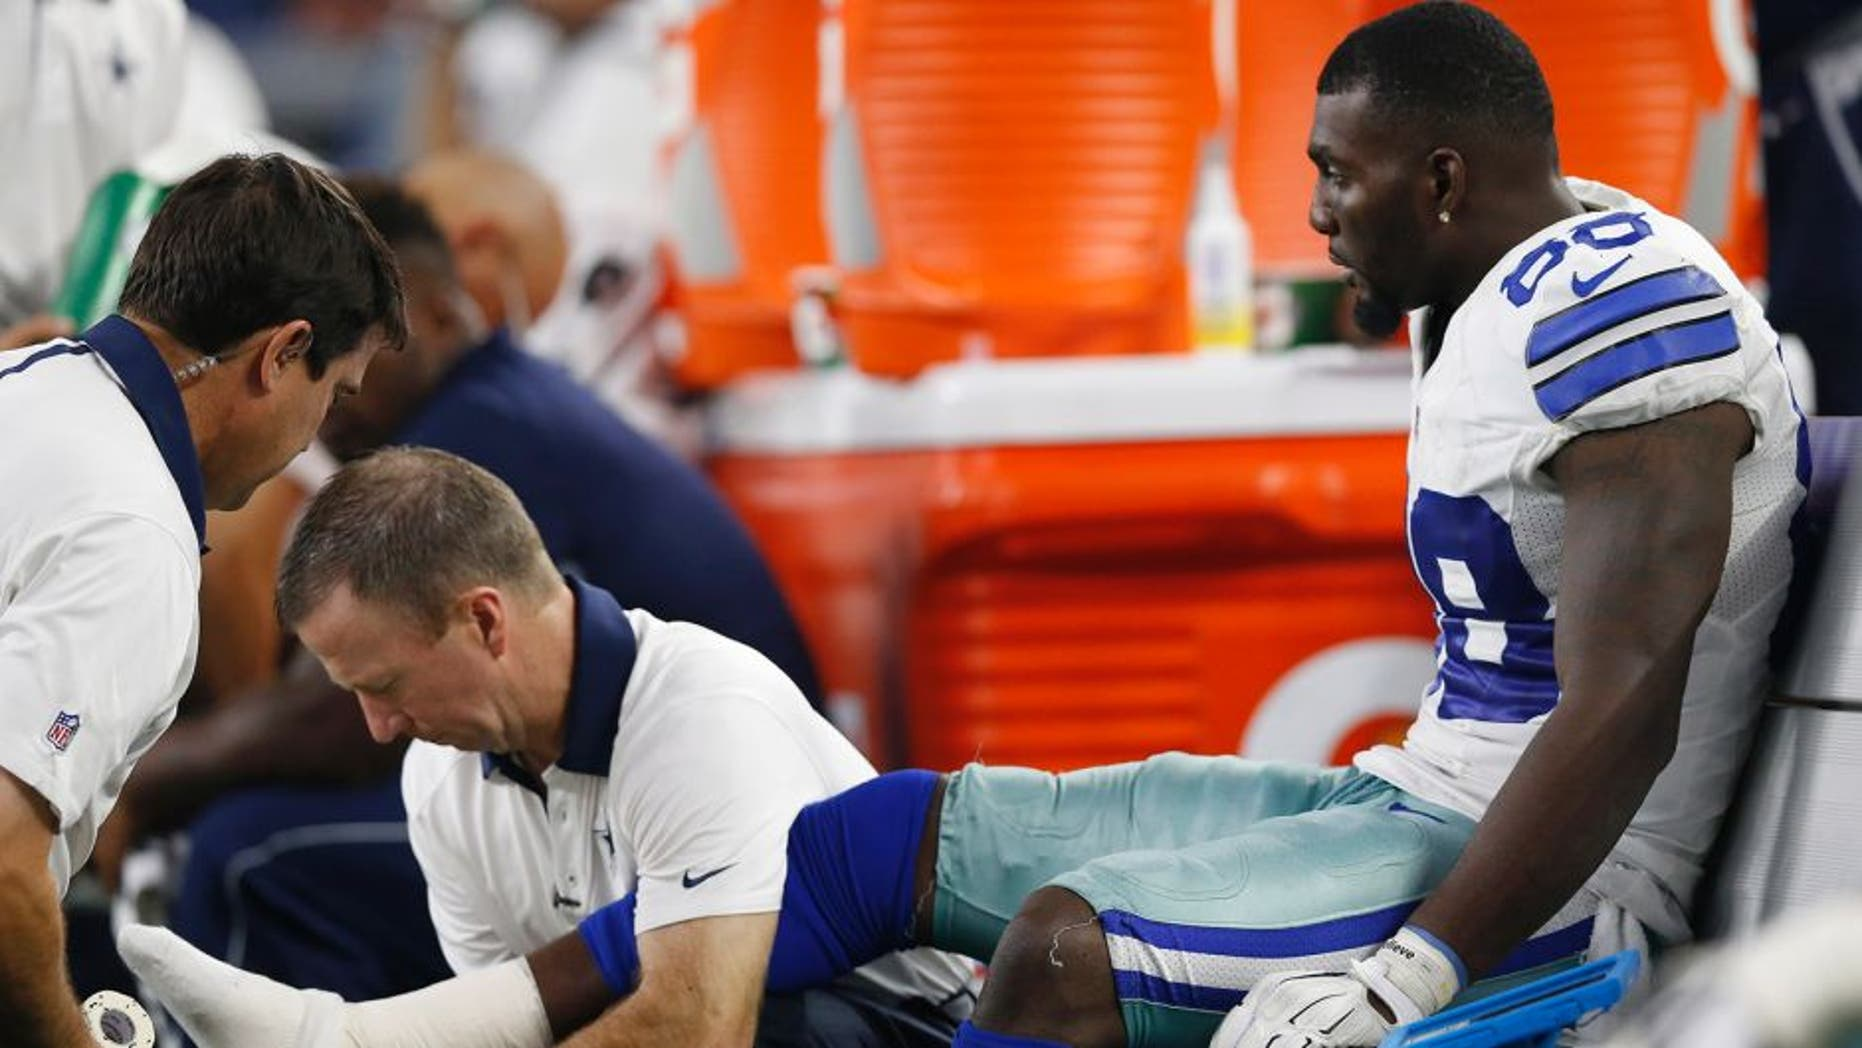 Sep 13, 2015; Arlington, TX, USA; Dallas Cowboys receiver Dez Bryant (88) gets his right ankle worked on by trainers while on the bench in the fourth quarter against the New York Giants at AT&T Stadium. Mandatory Credit: Matthew Emmons-USA TODAY Sports